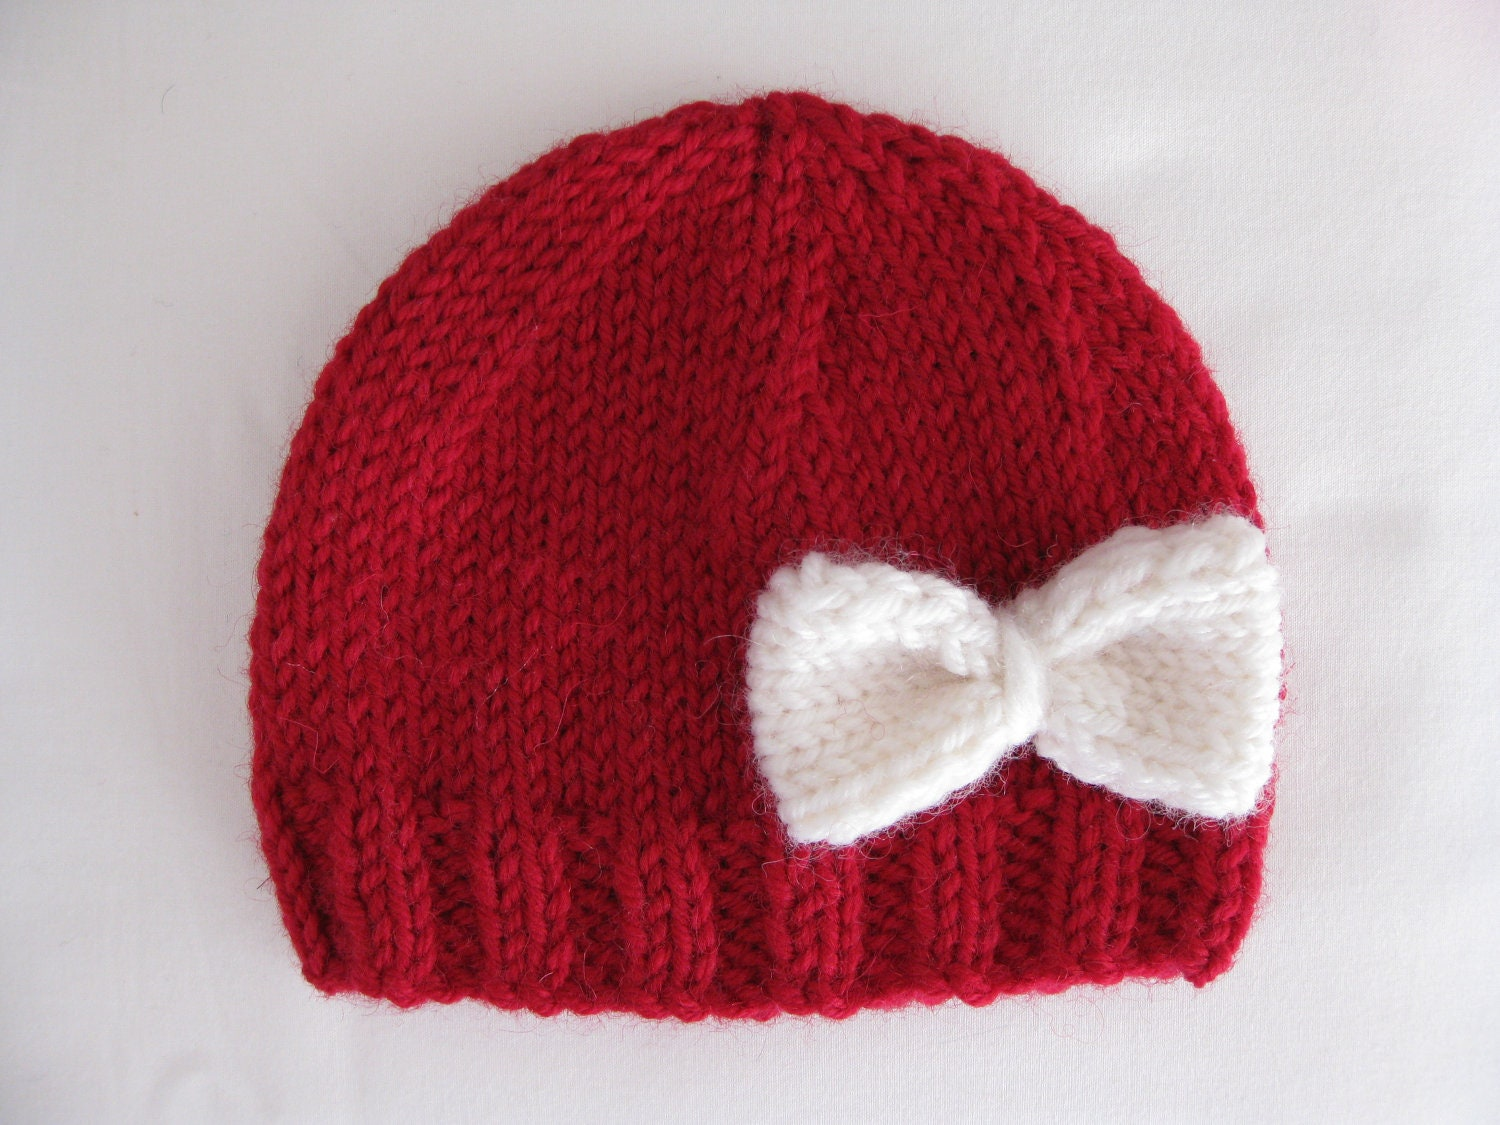 Knit Pattern For Baby Hat : Pattern knit preemie newborn hat bow baby beanie 8ply DK